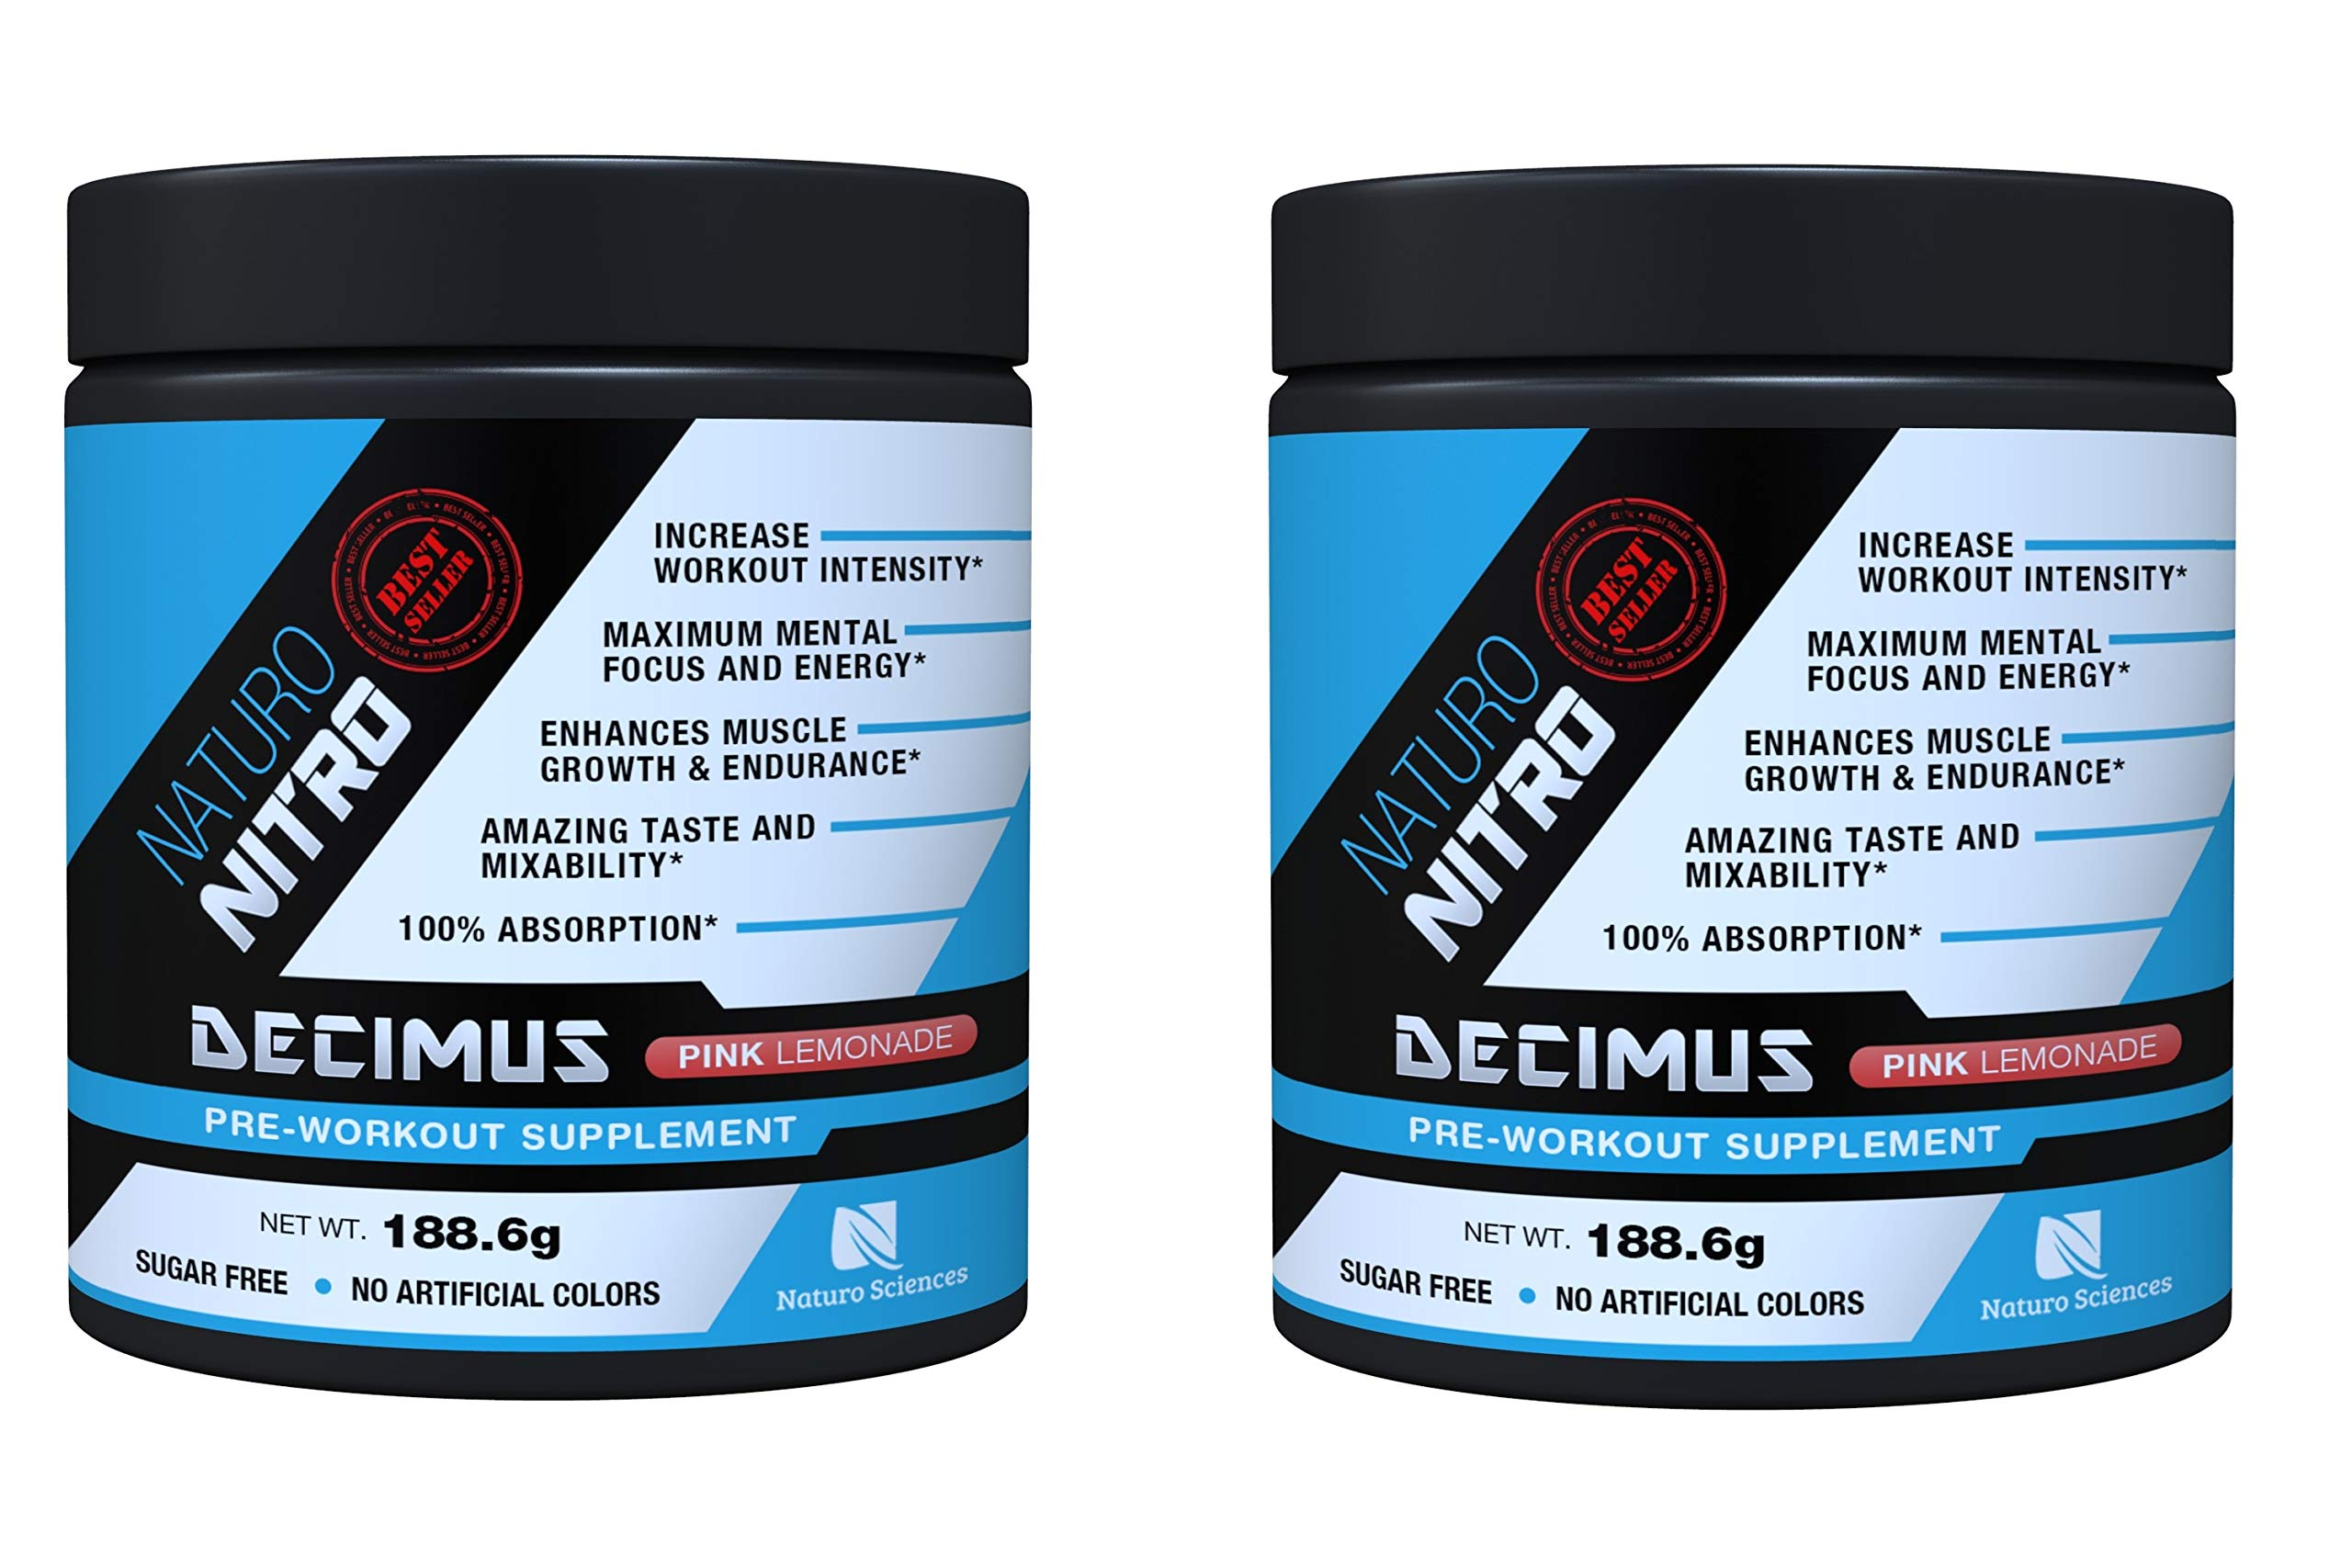 Decimus Pre-Workout | Best Pre Workout Supplement Powder | Naturo Sciences | 28 Servings, Pink Lemonade (2 Pack)